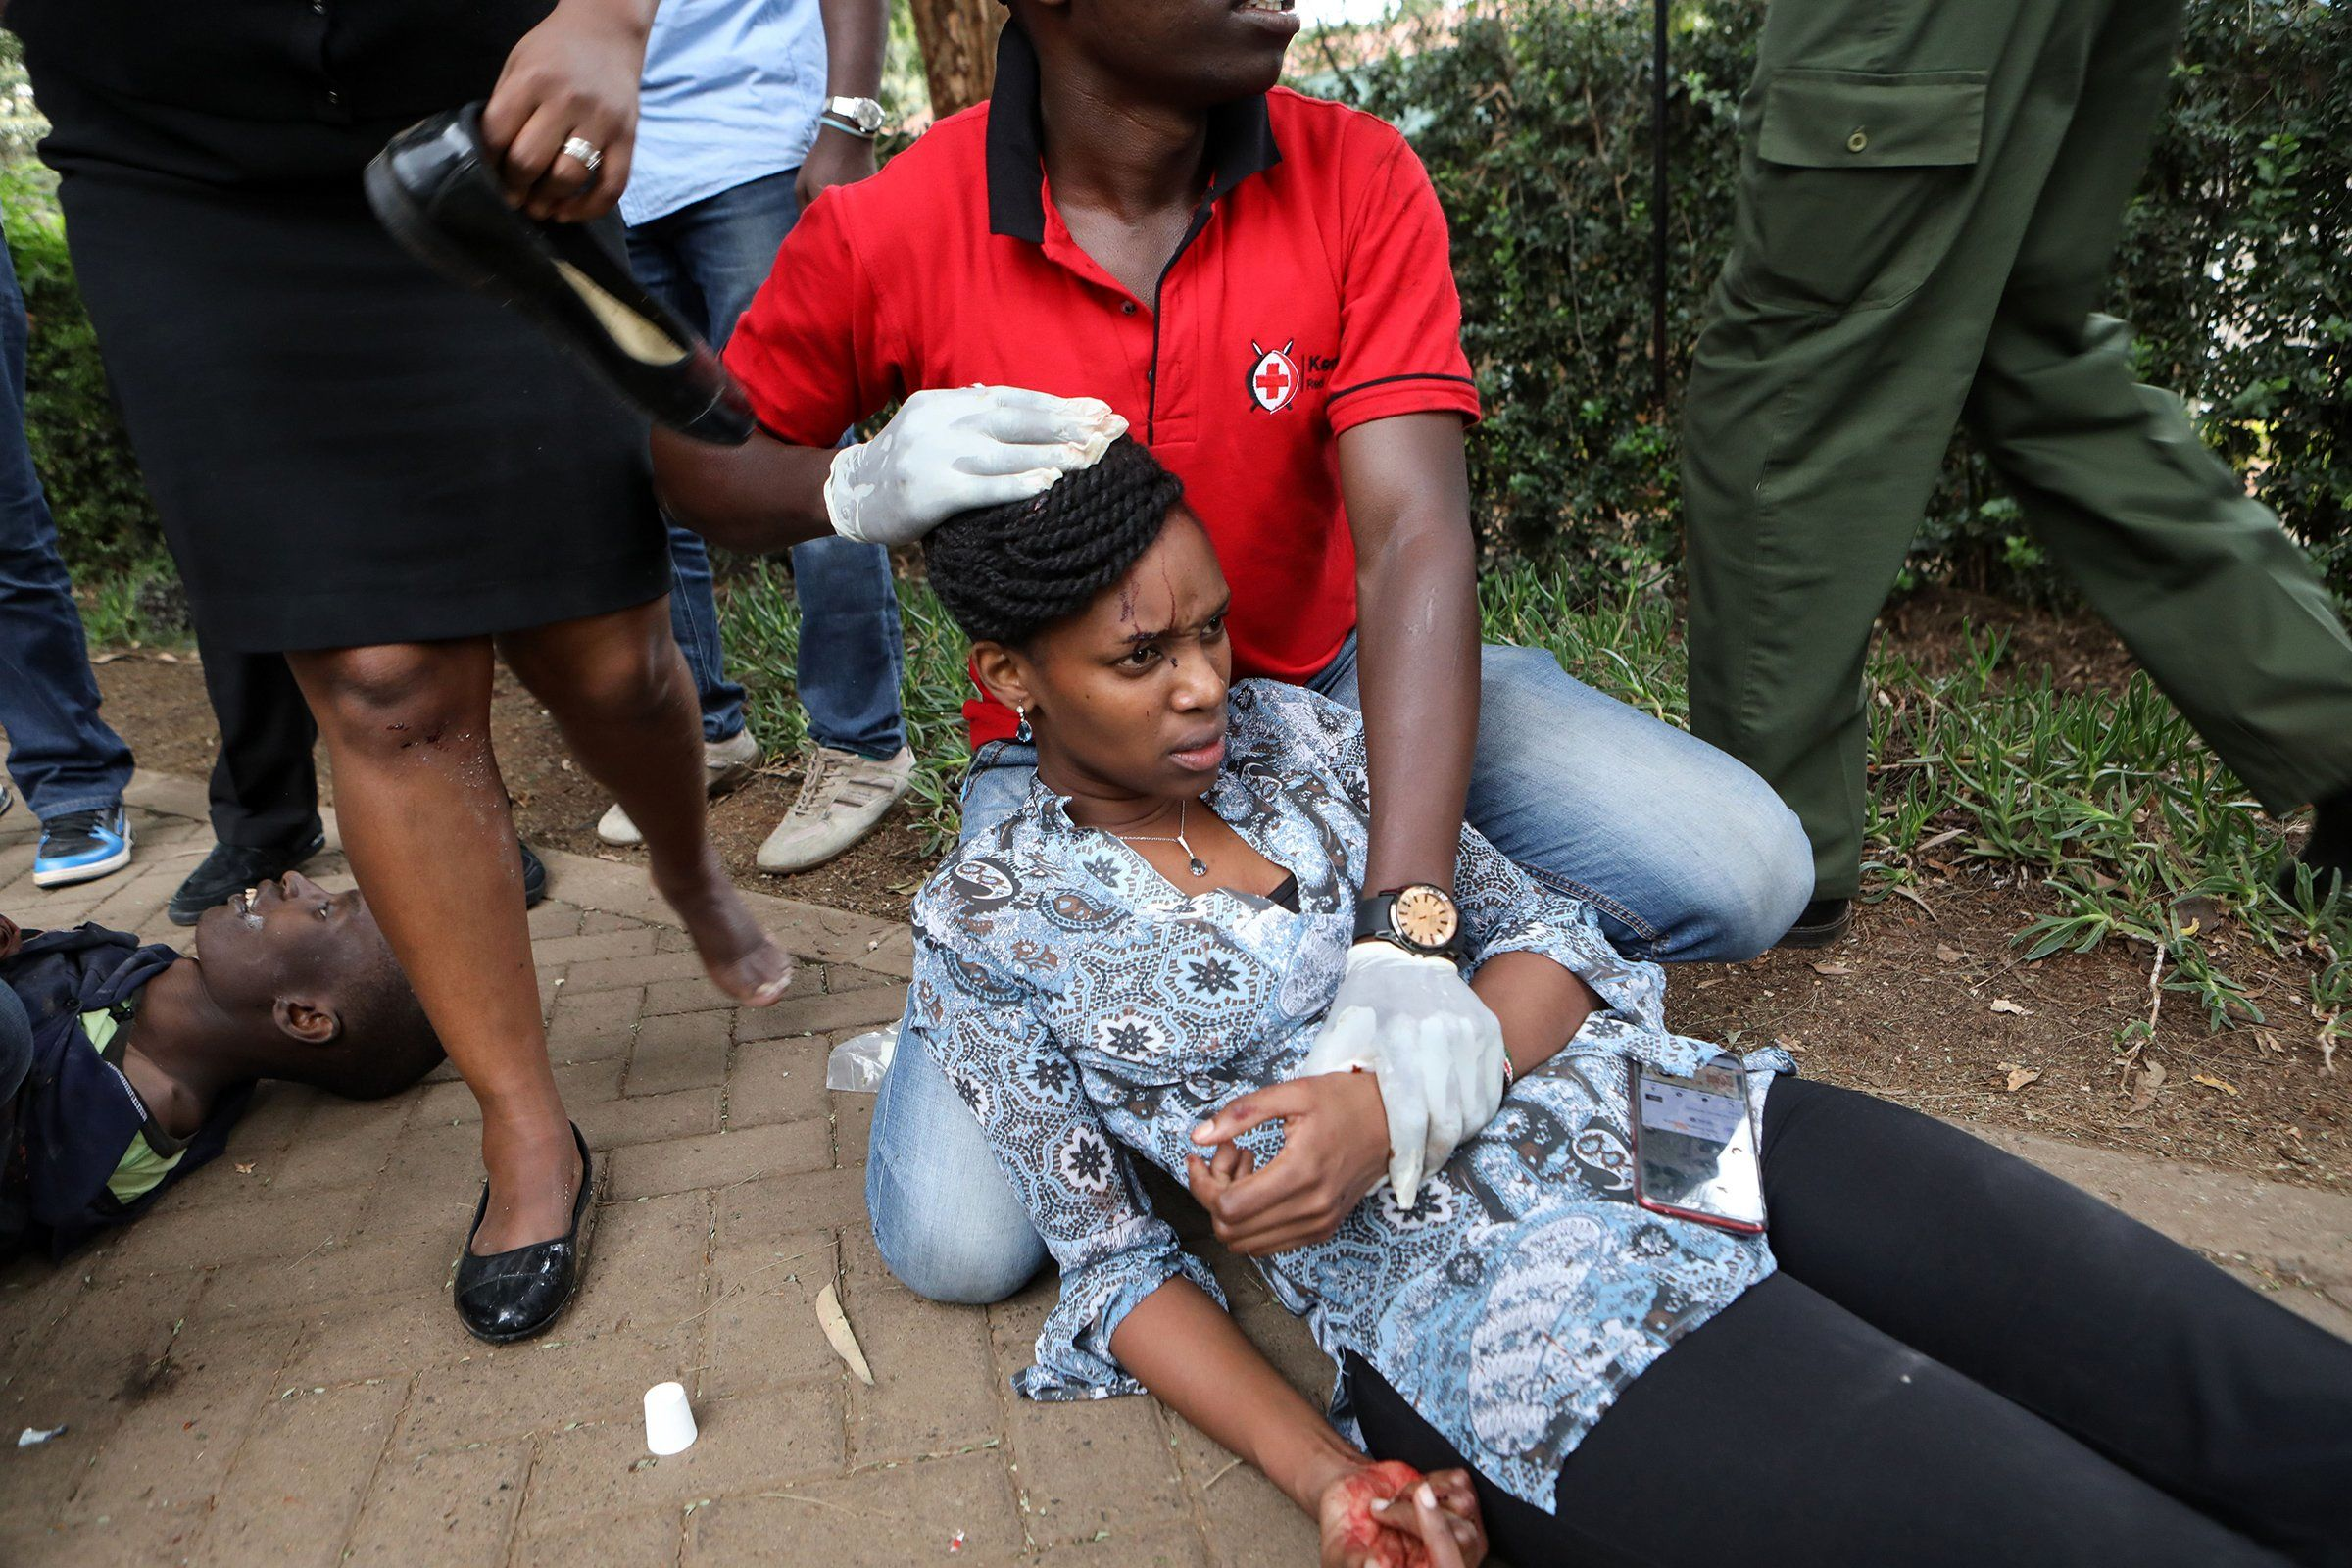 A woman receives medical attention after an apparent terrorist attack on an upscale hotel in Nairobi on Jan. 15. More than a dozen people were killed.